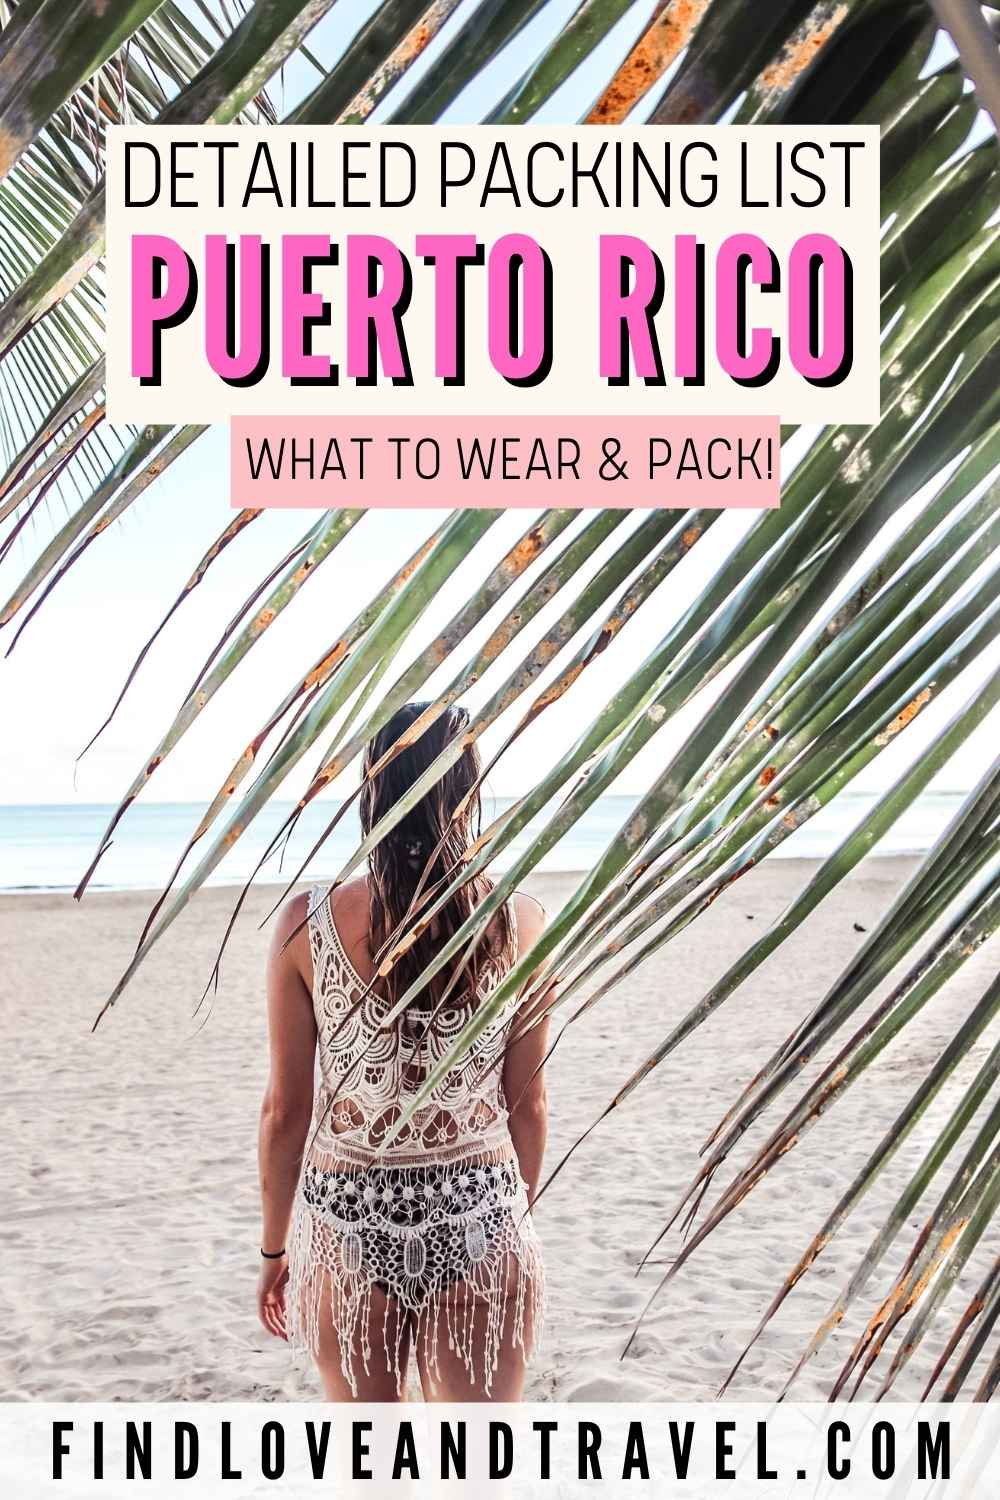 Puerto Rico Packing List what to pack and wear in Puerto Rico